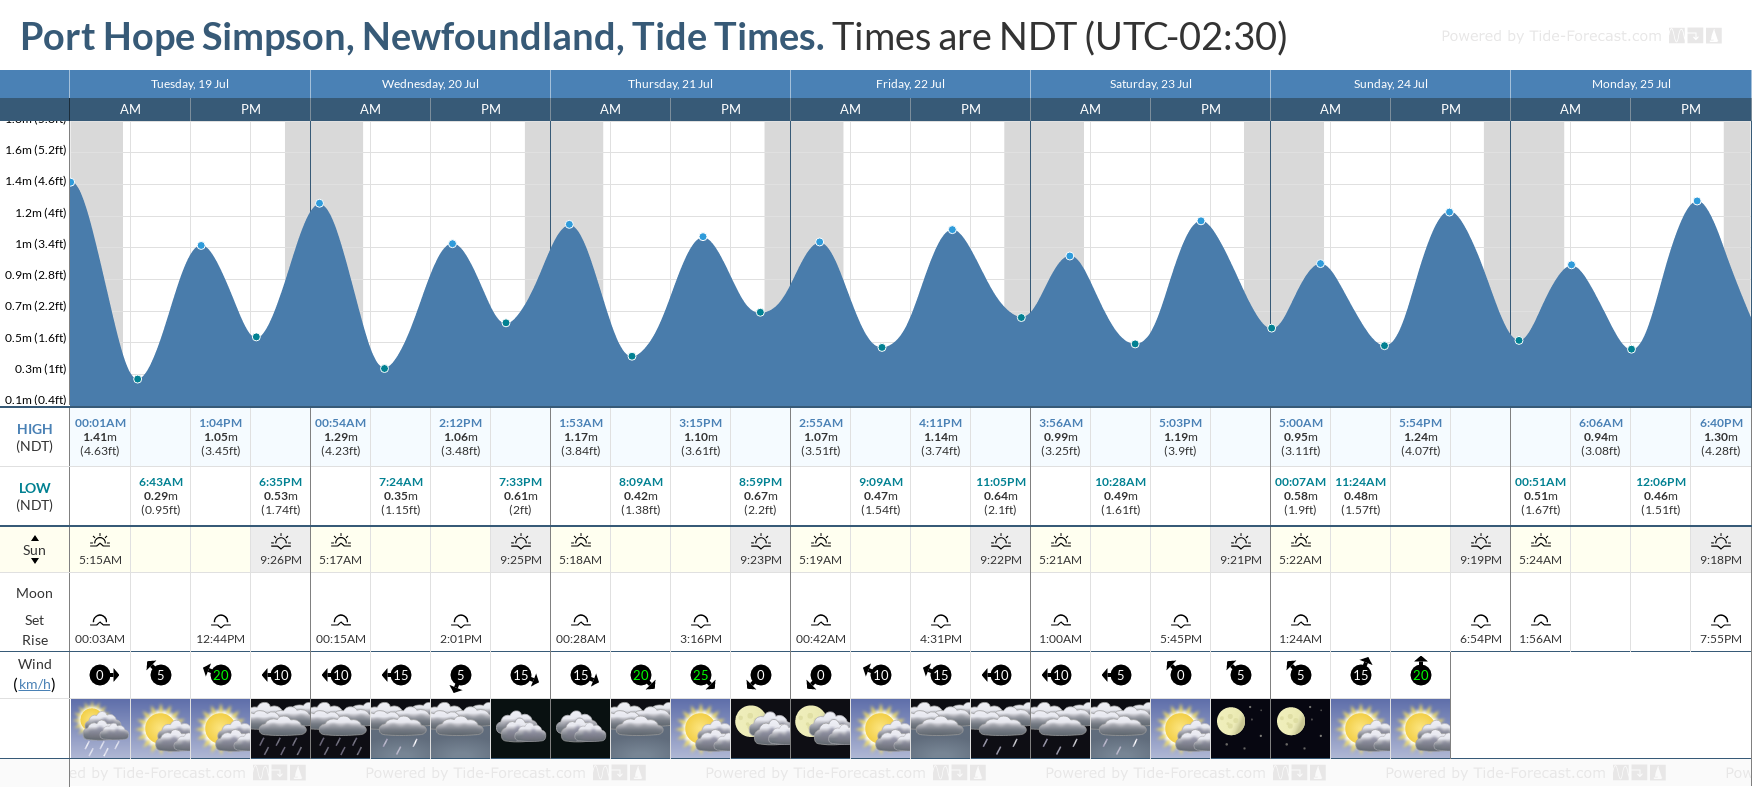 Port Hope Simpson, Newfoundland Tide Chart including high and low tide tide times for the next 7 days